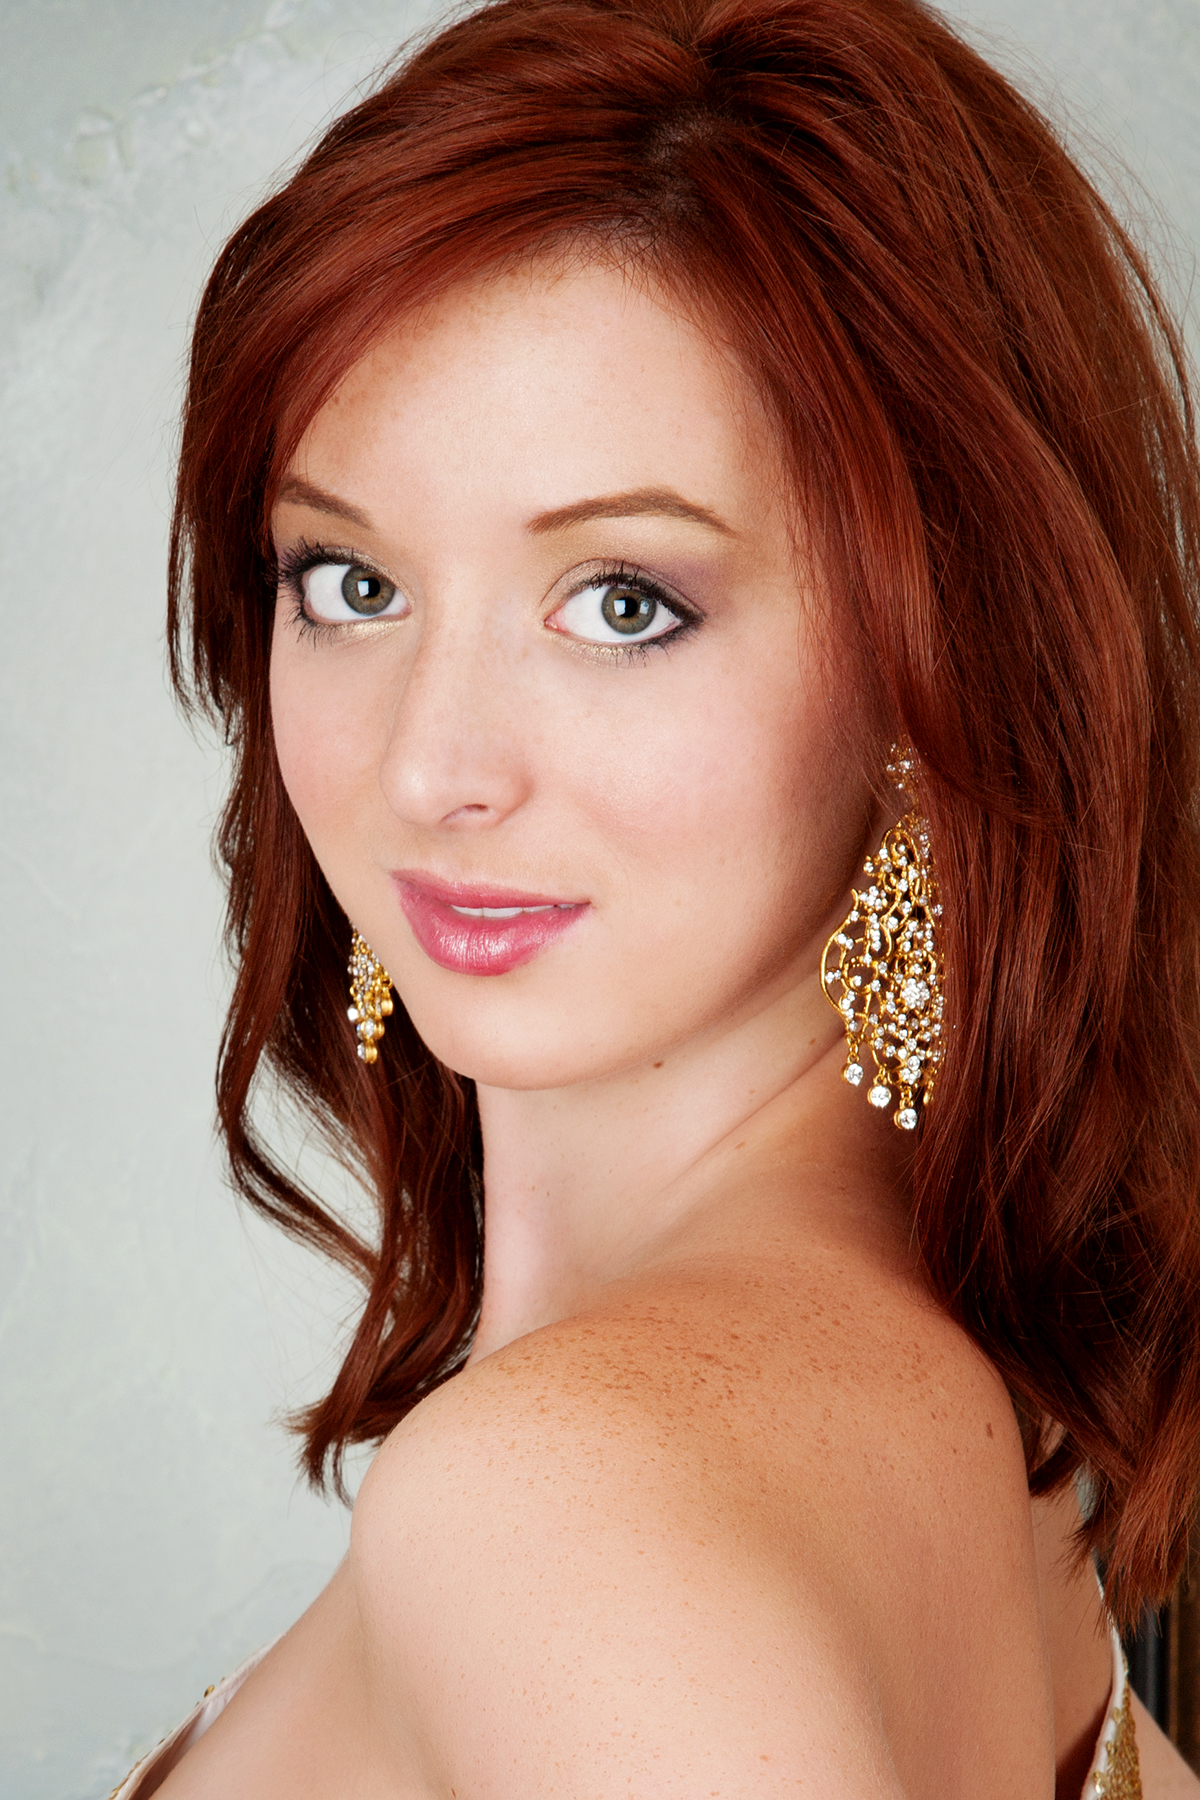 Teen Beauty Pageants to download Teen Beauty Pageants just right click ...